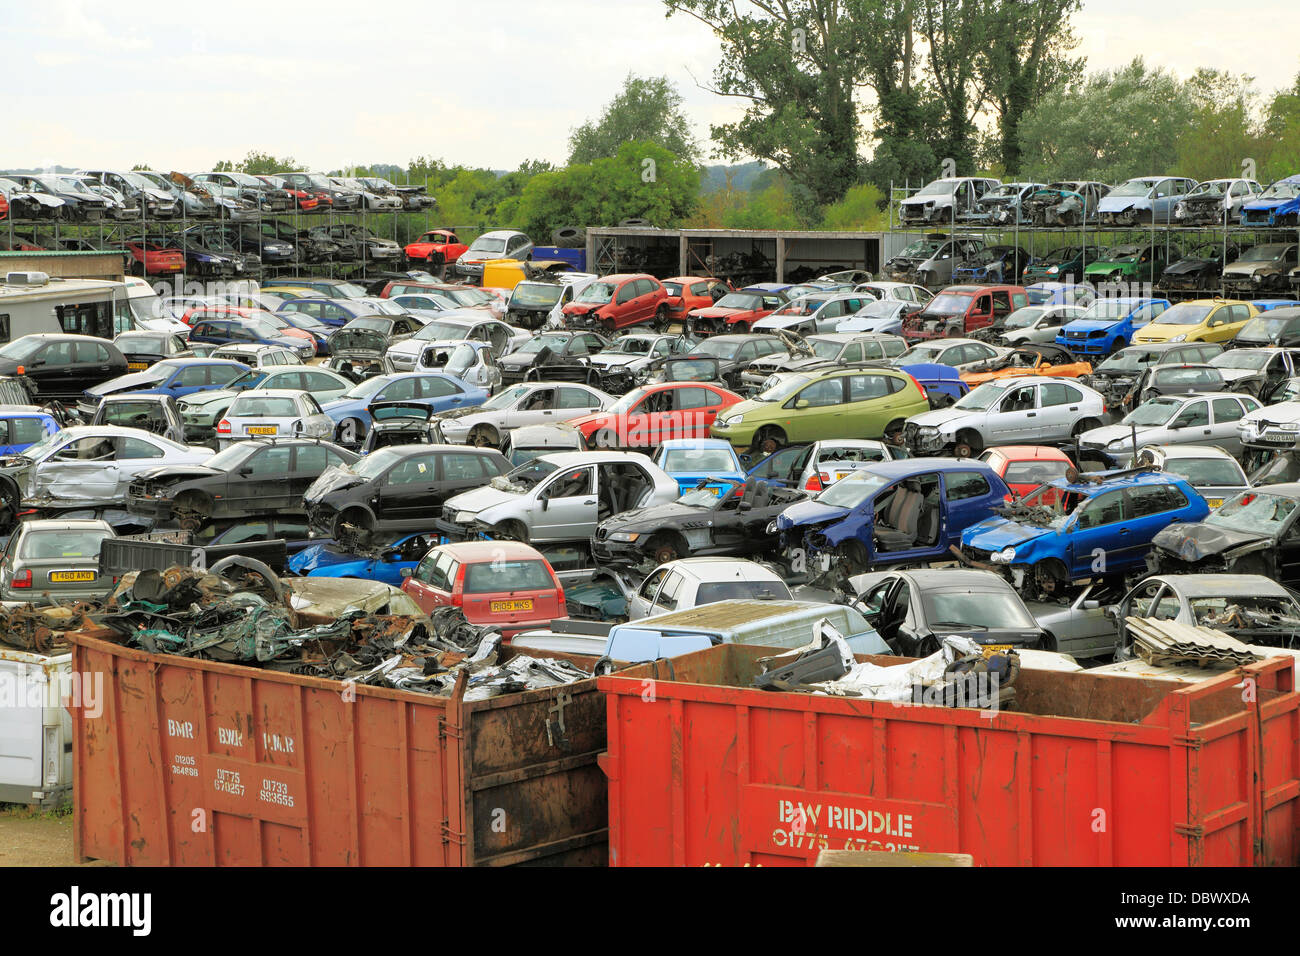 Wrecked Vehicles Dump , salvage yard, recycling depot cars scrap yards dumps depots vehicle wrecks Wereham Norfolk - Stock Image